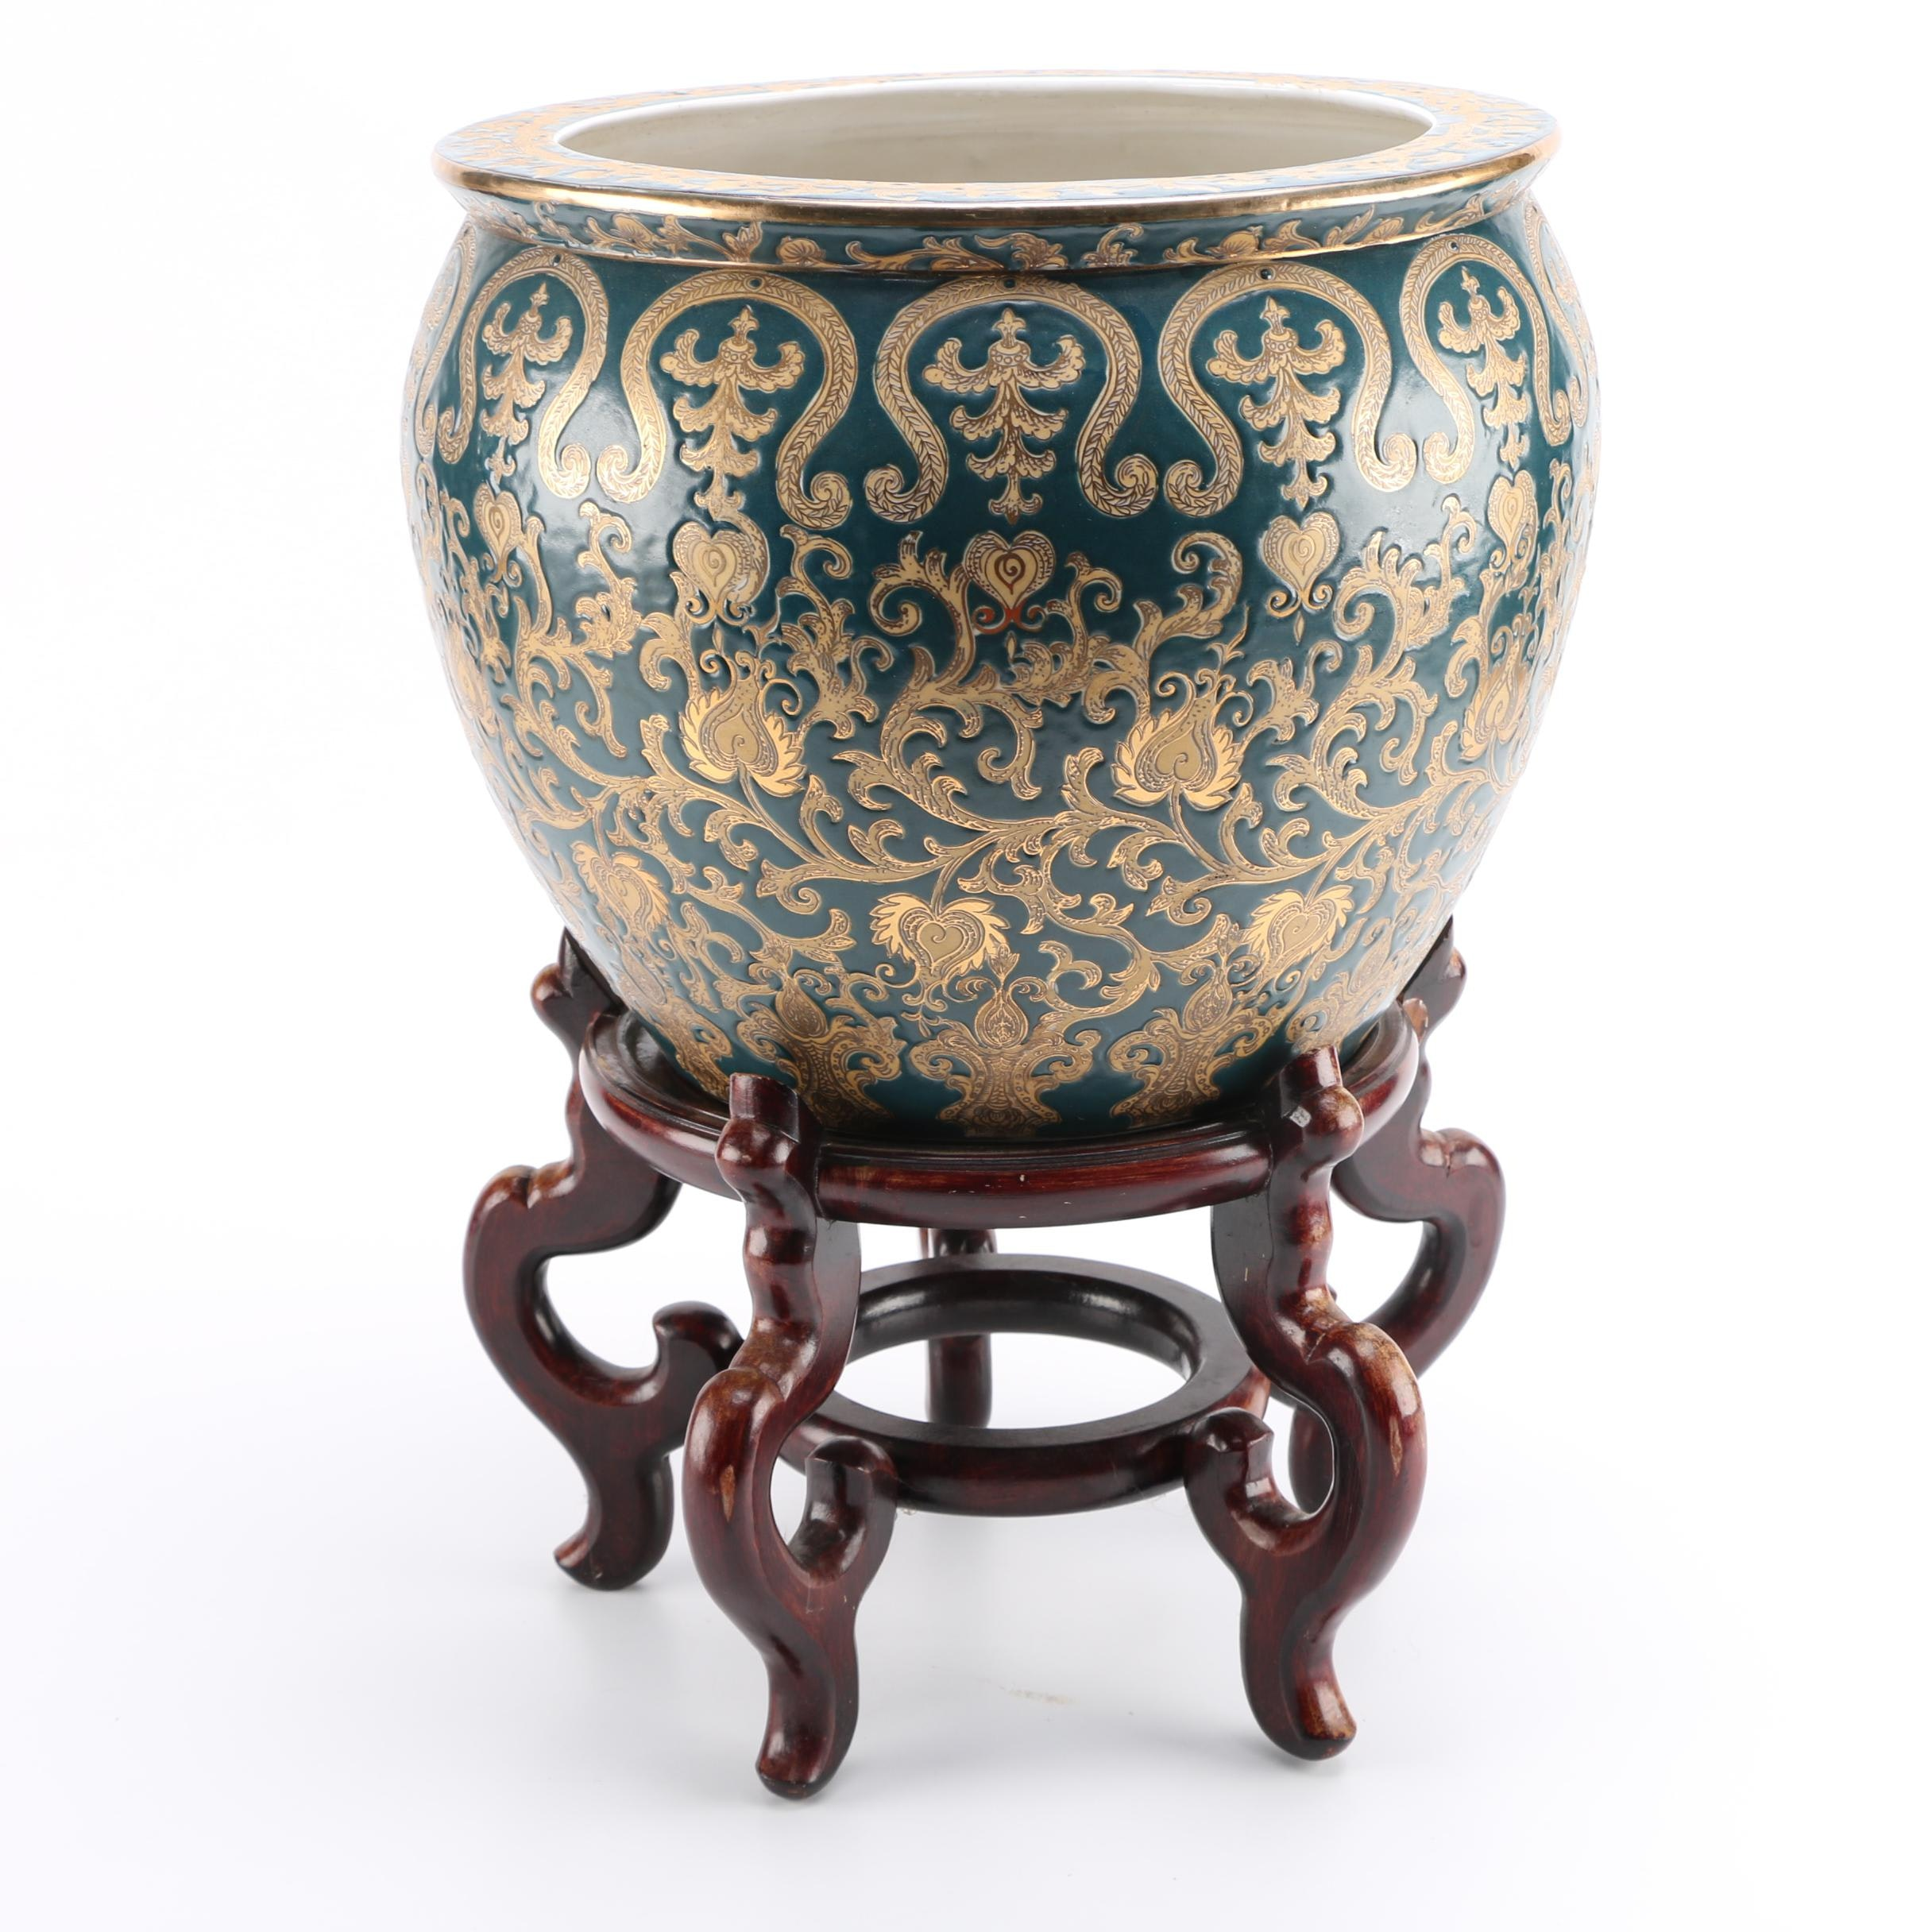 Aqua and Gold Tone Chinese Planter and Stand